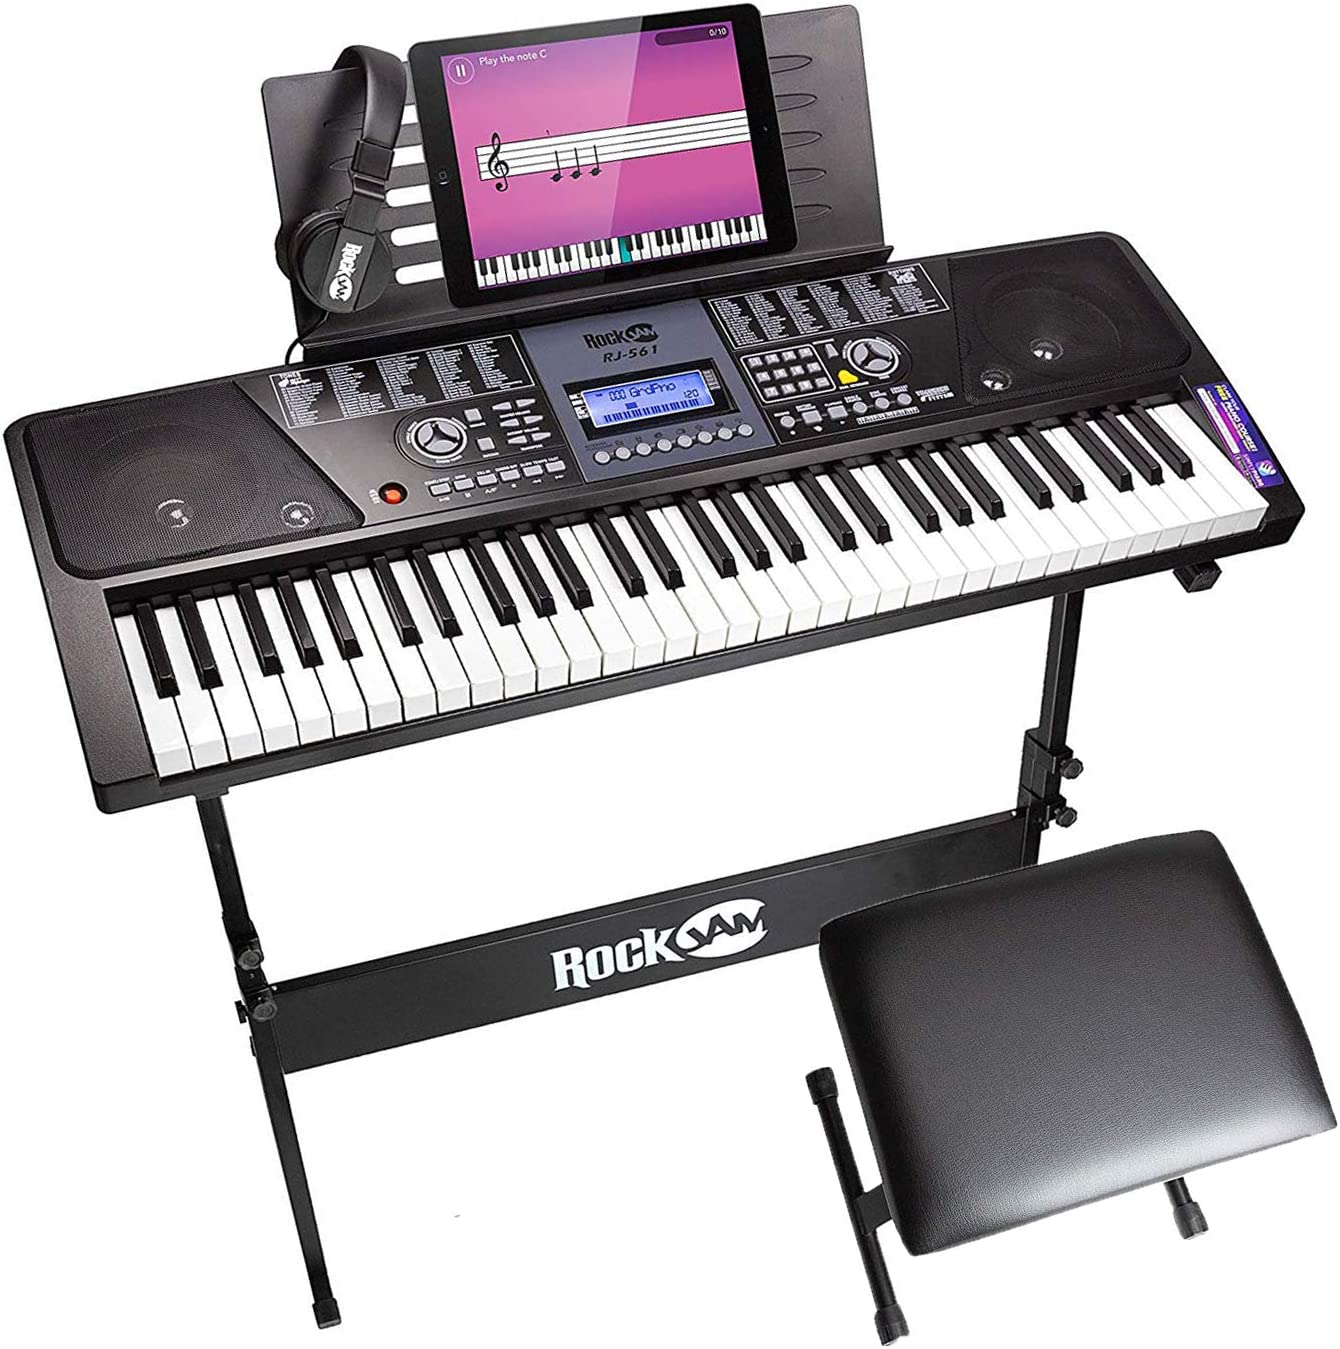 Rockjam 61-Key Electronic Keyboard Piano Superkit With Stand, Stool, Headphones